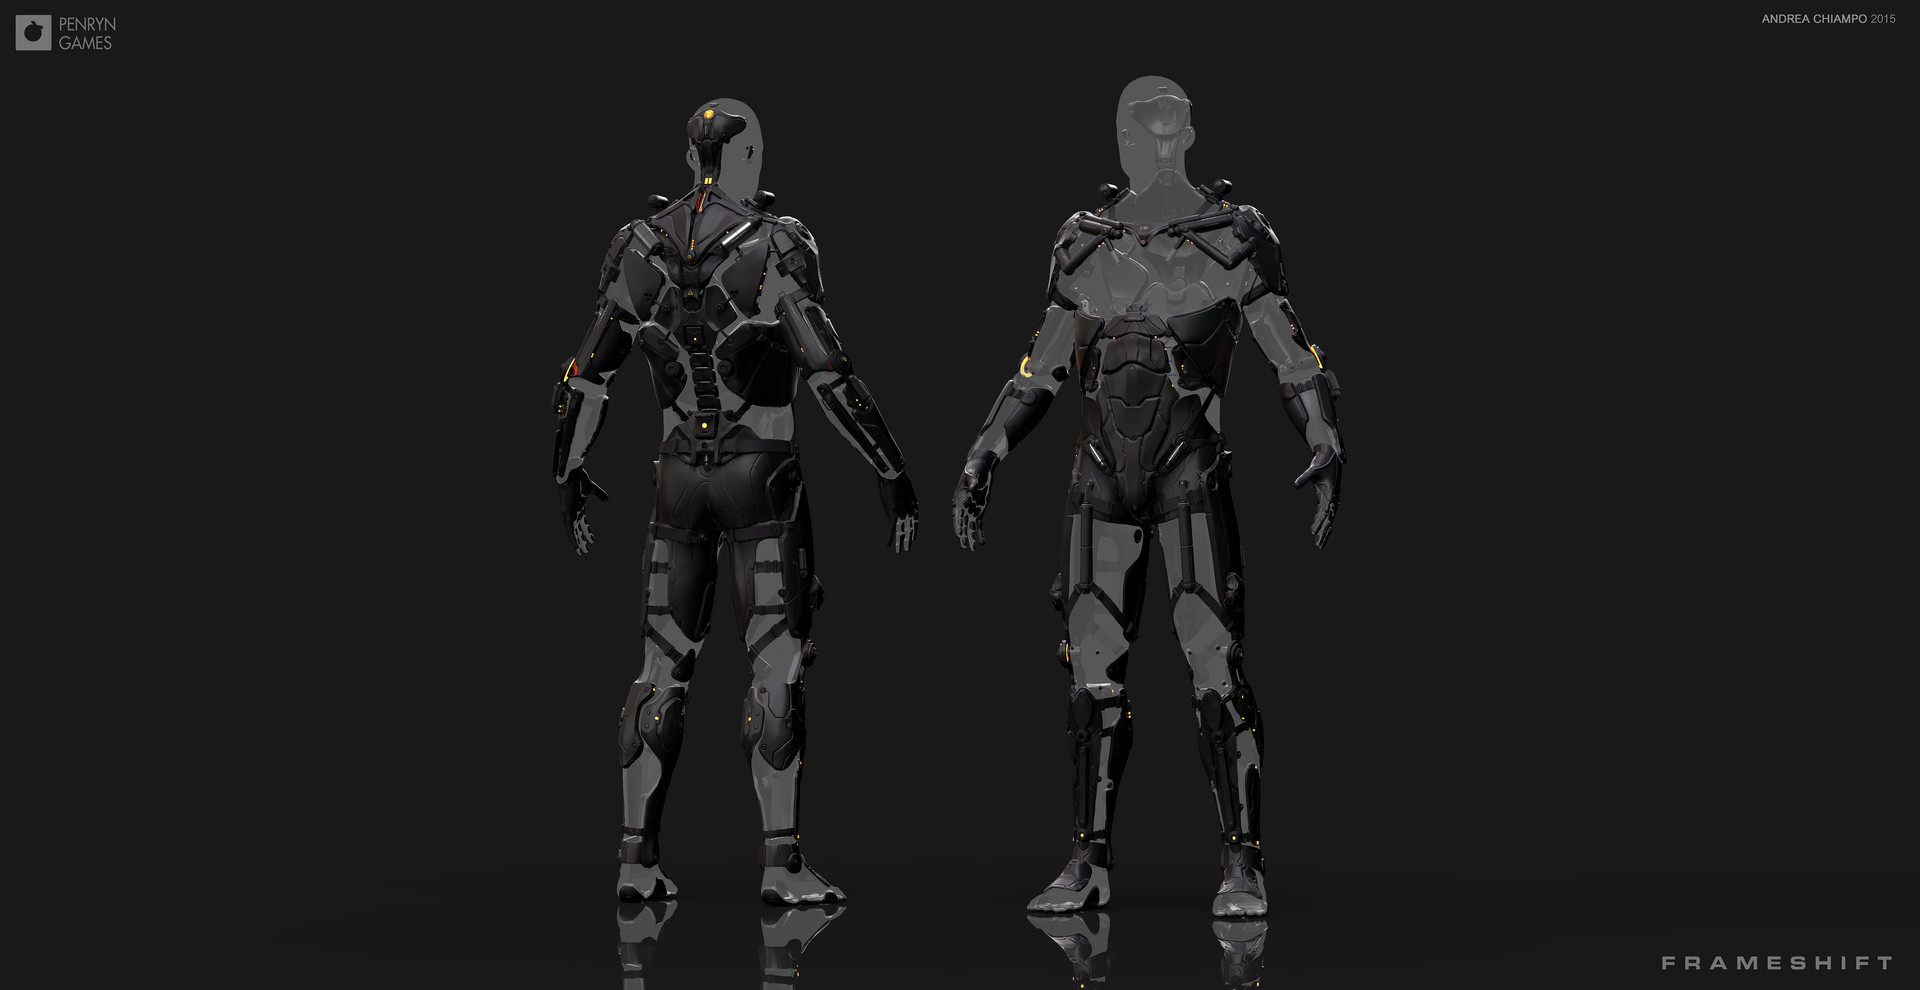 Andrea chiampo exoskeleton character perspective images b